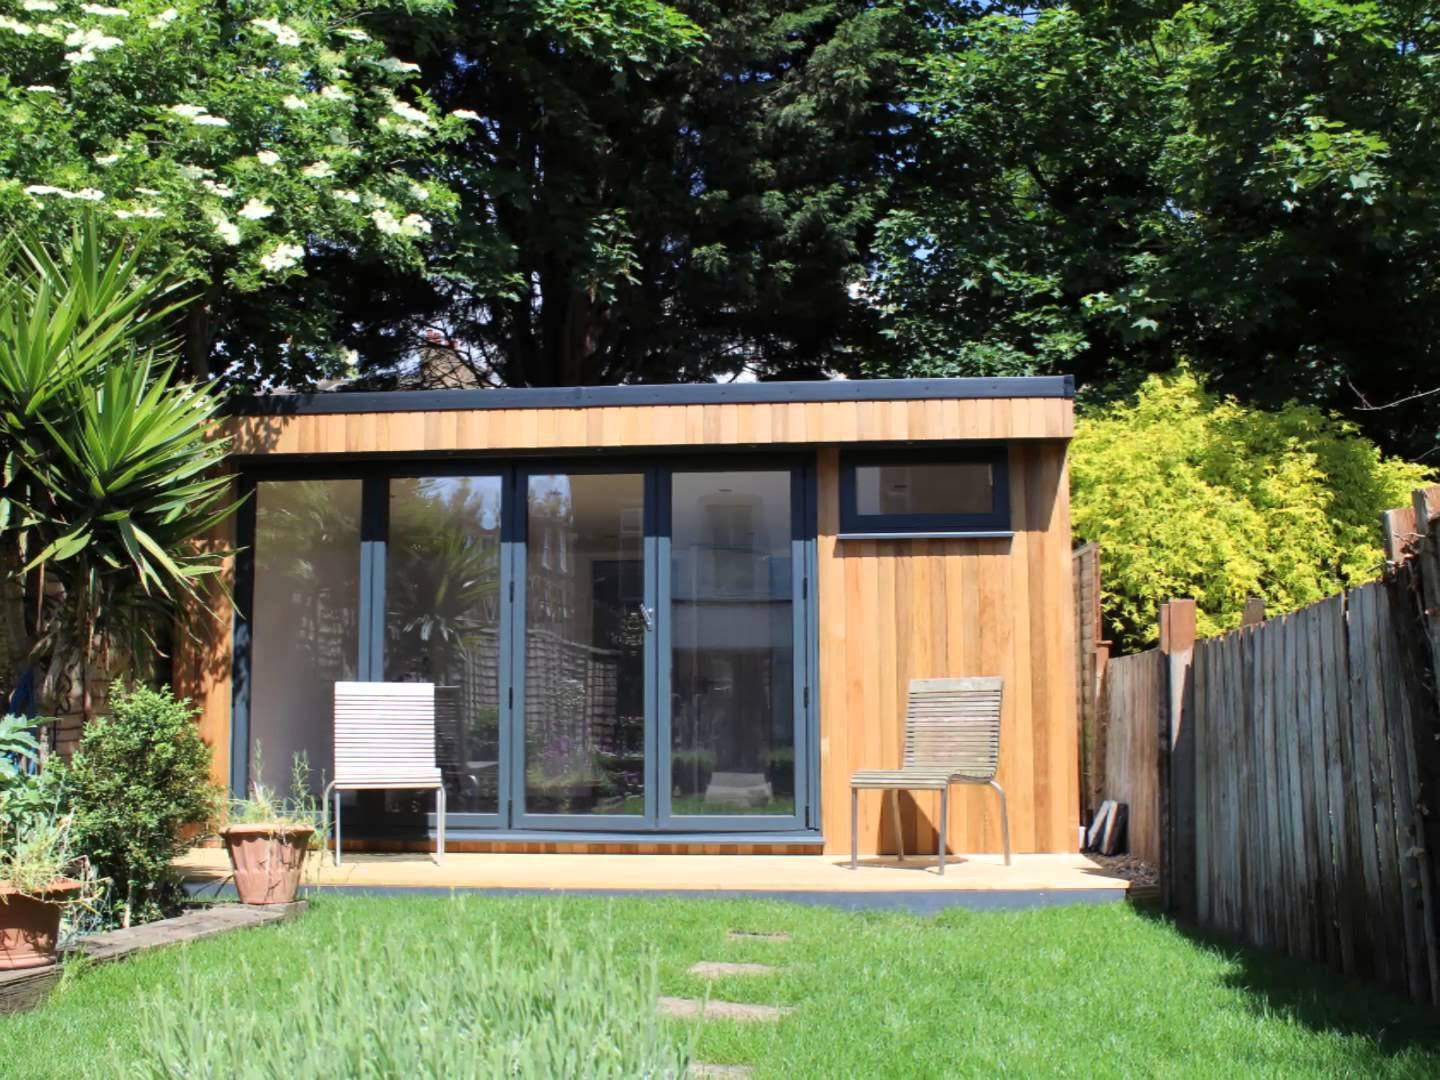 garden studio with bathroom built in west london WDRLWUT